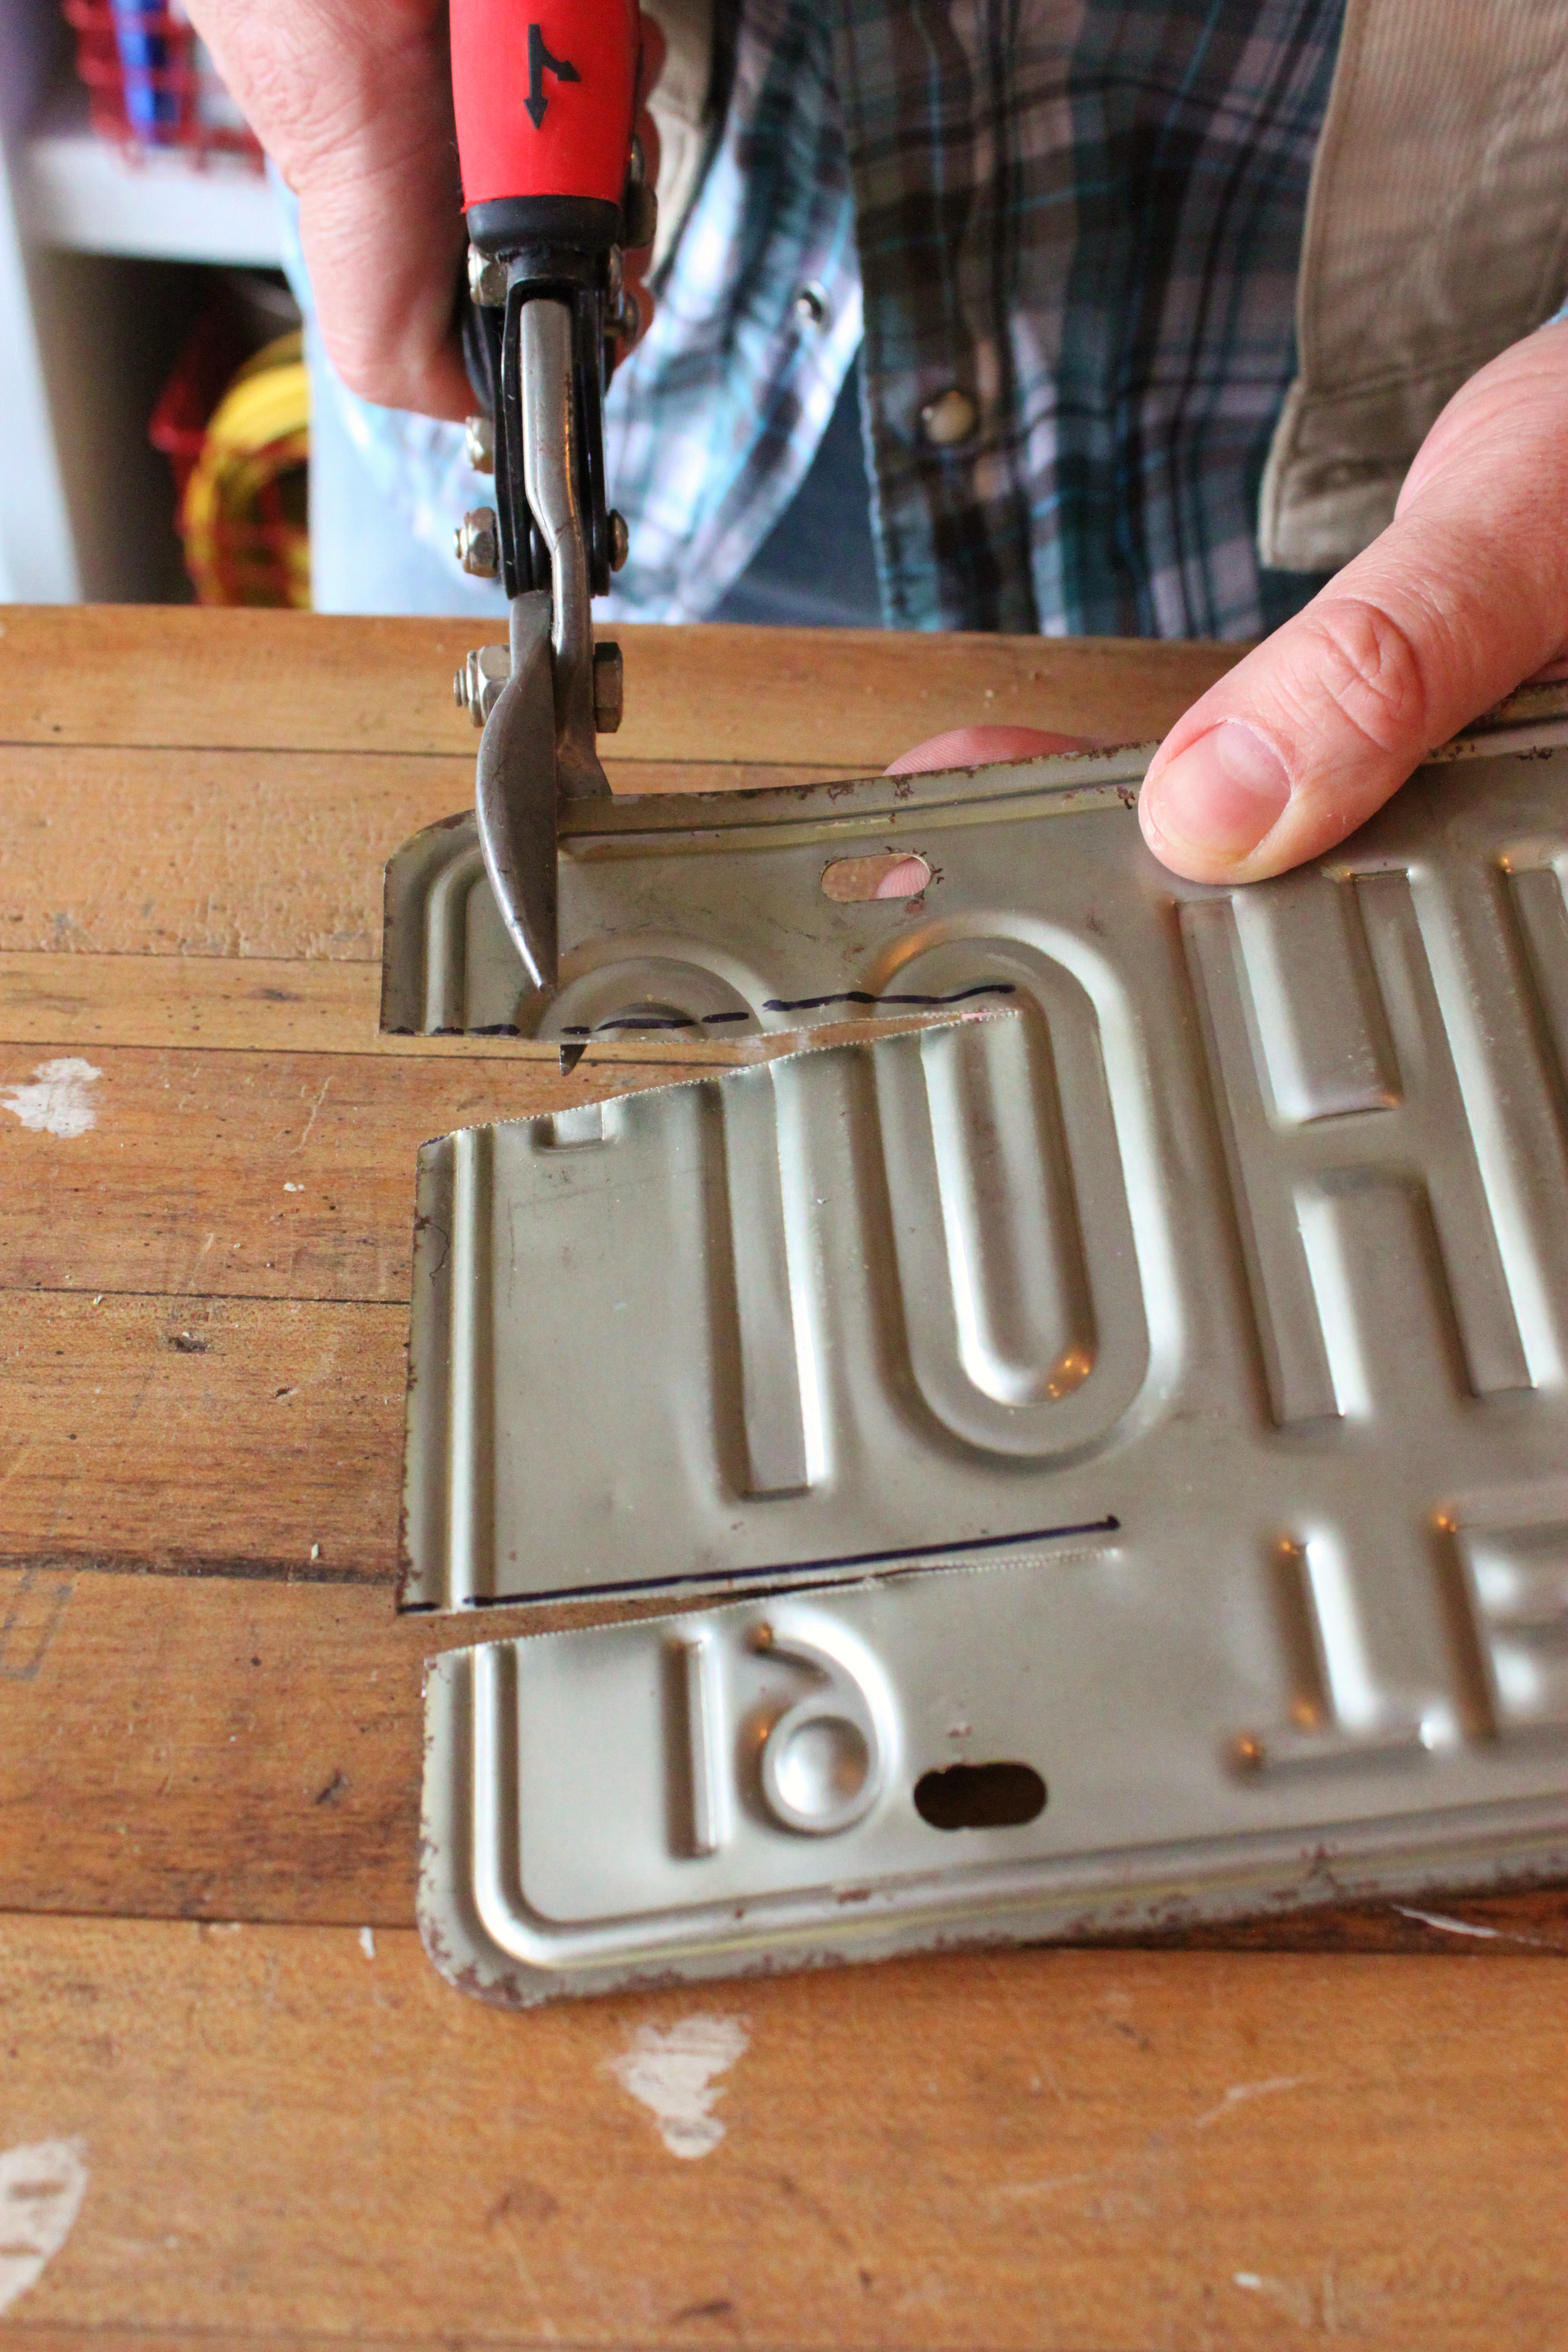 A Texas License Plate Becomes A Box The Cavender Diary